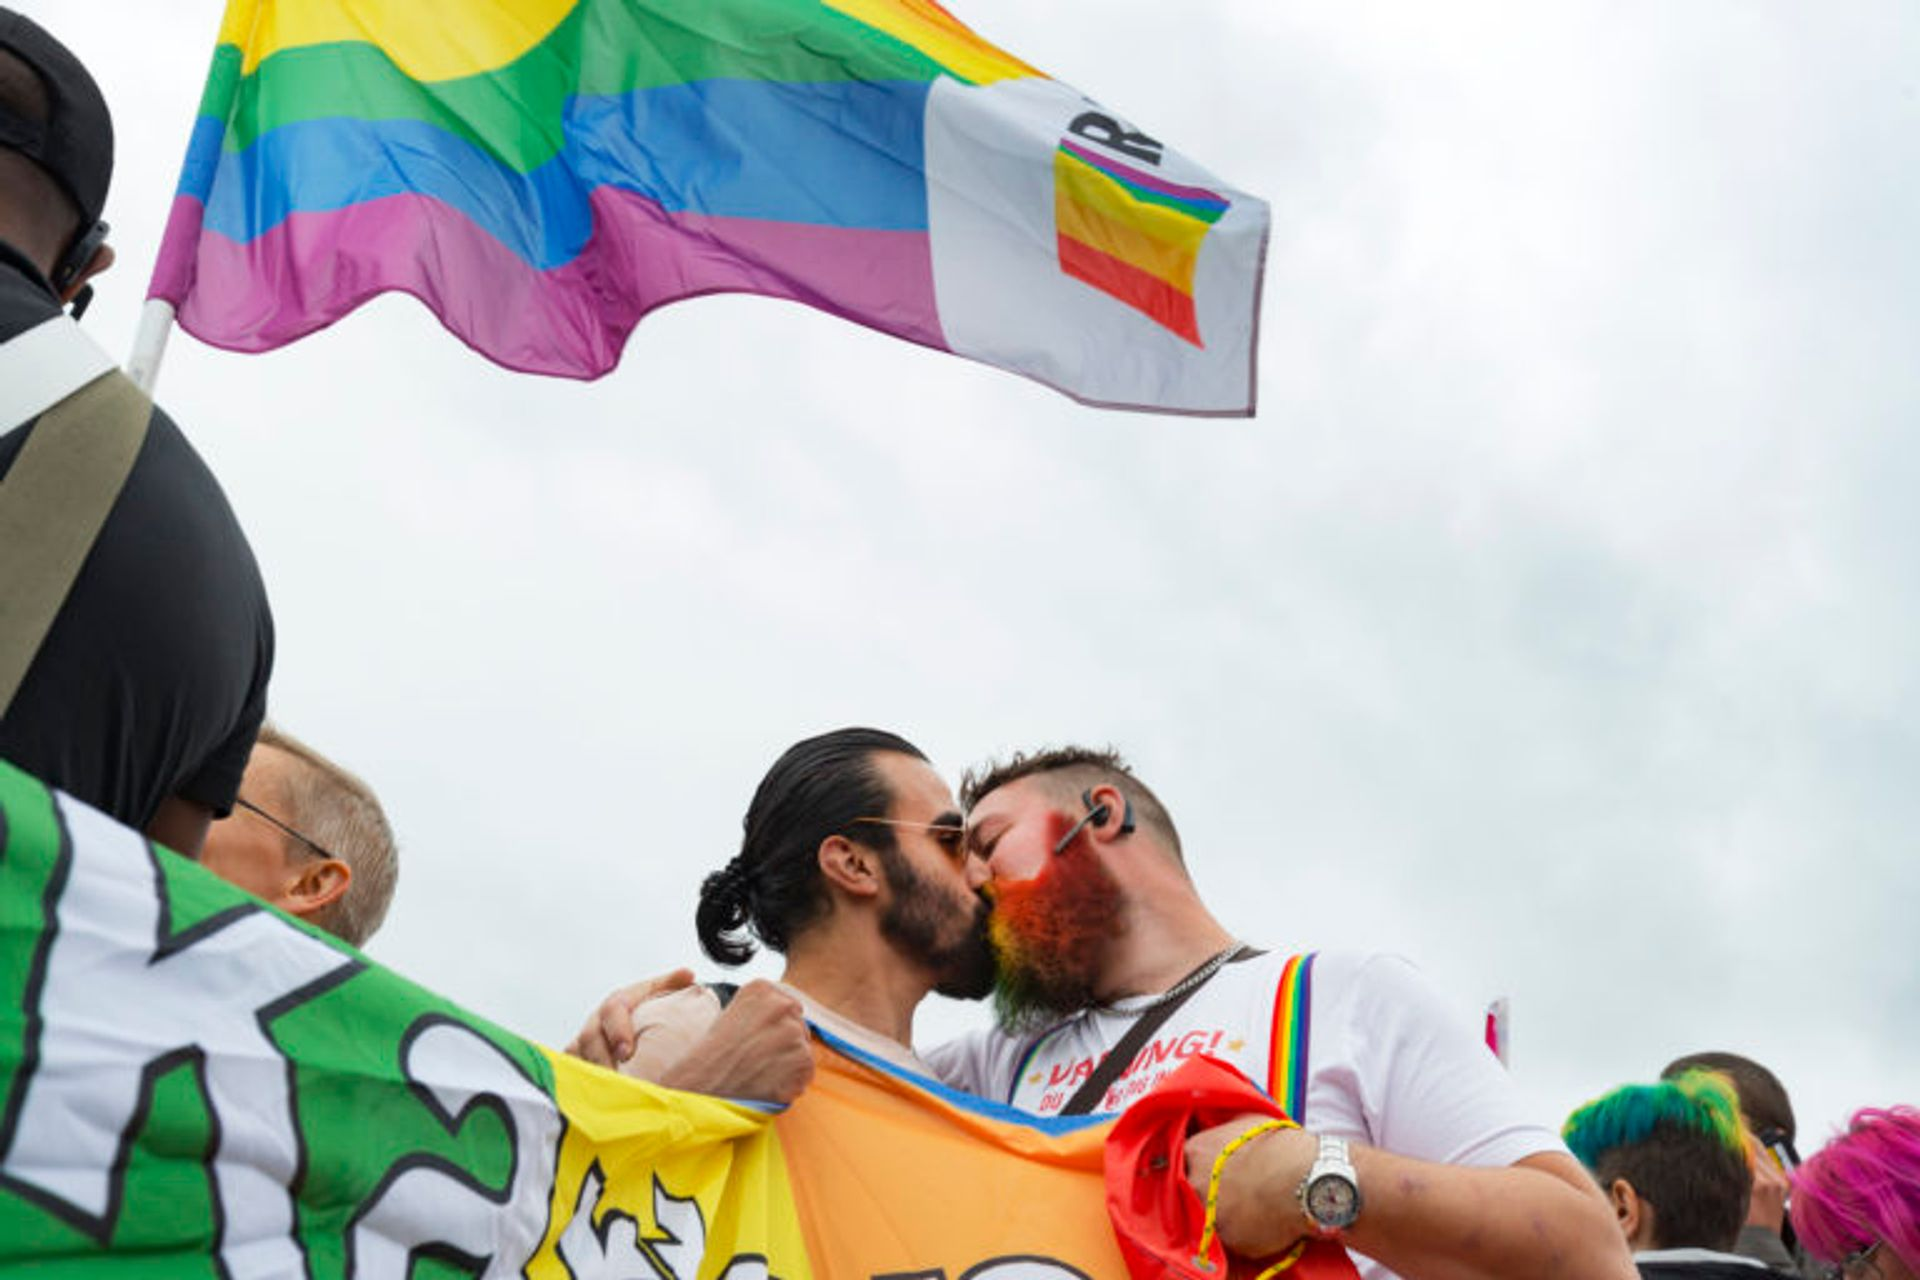 Two men kiss at Pride festival in Gothenburg